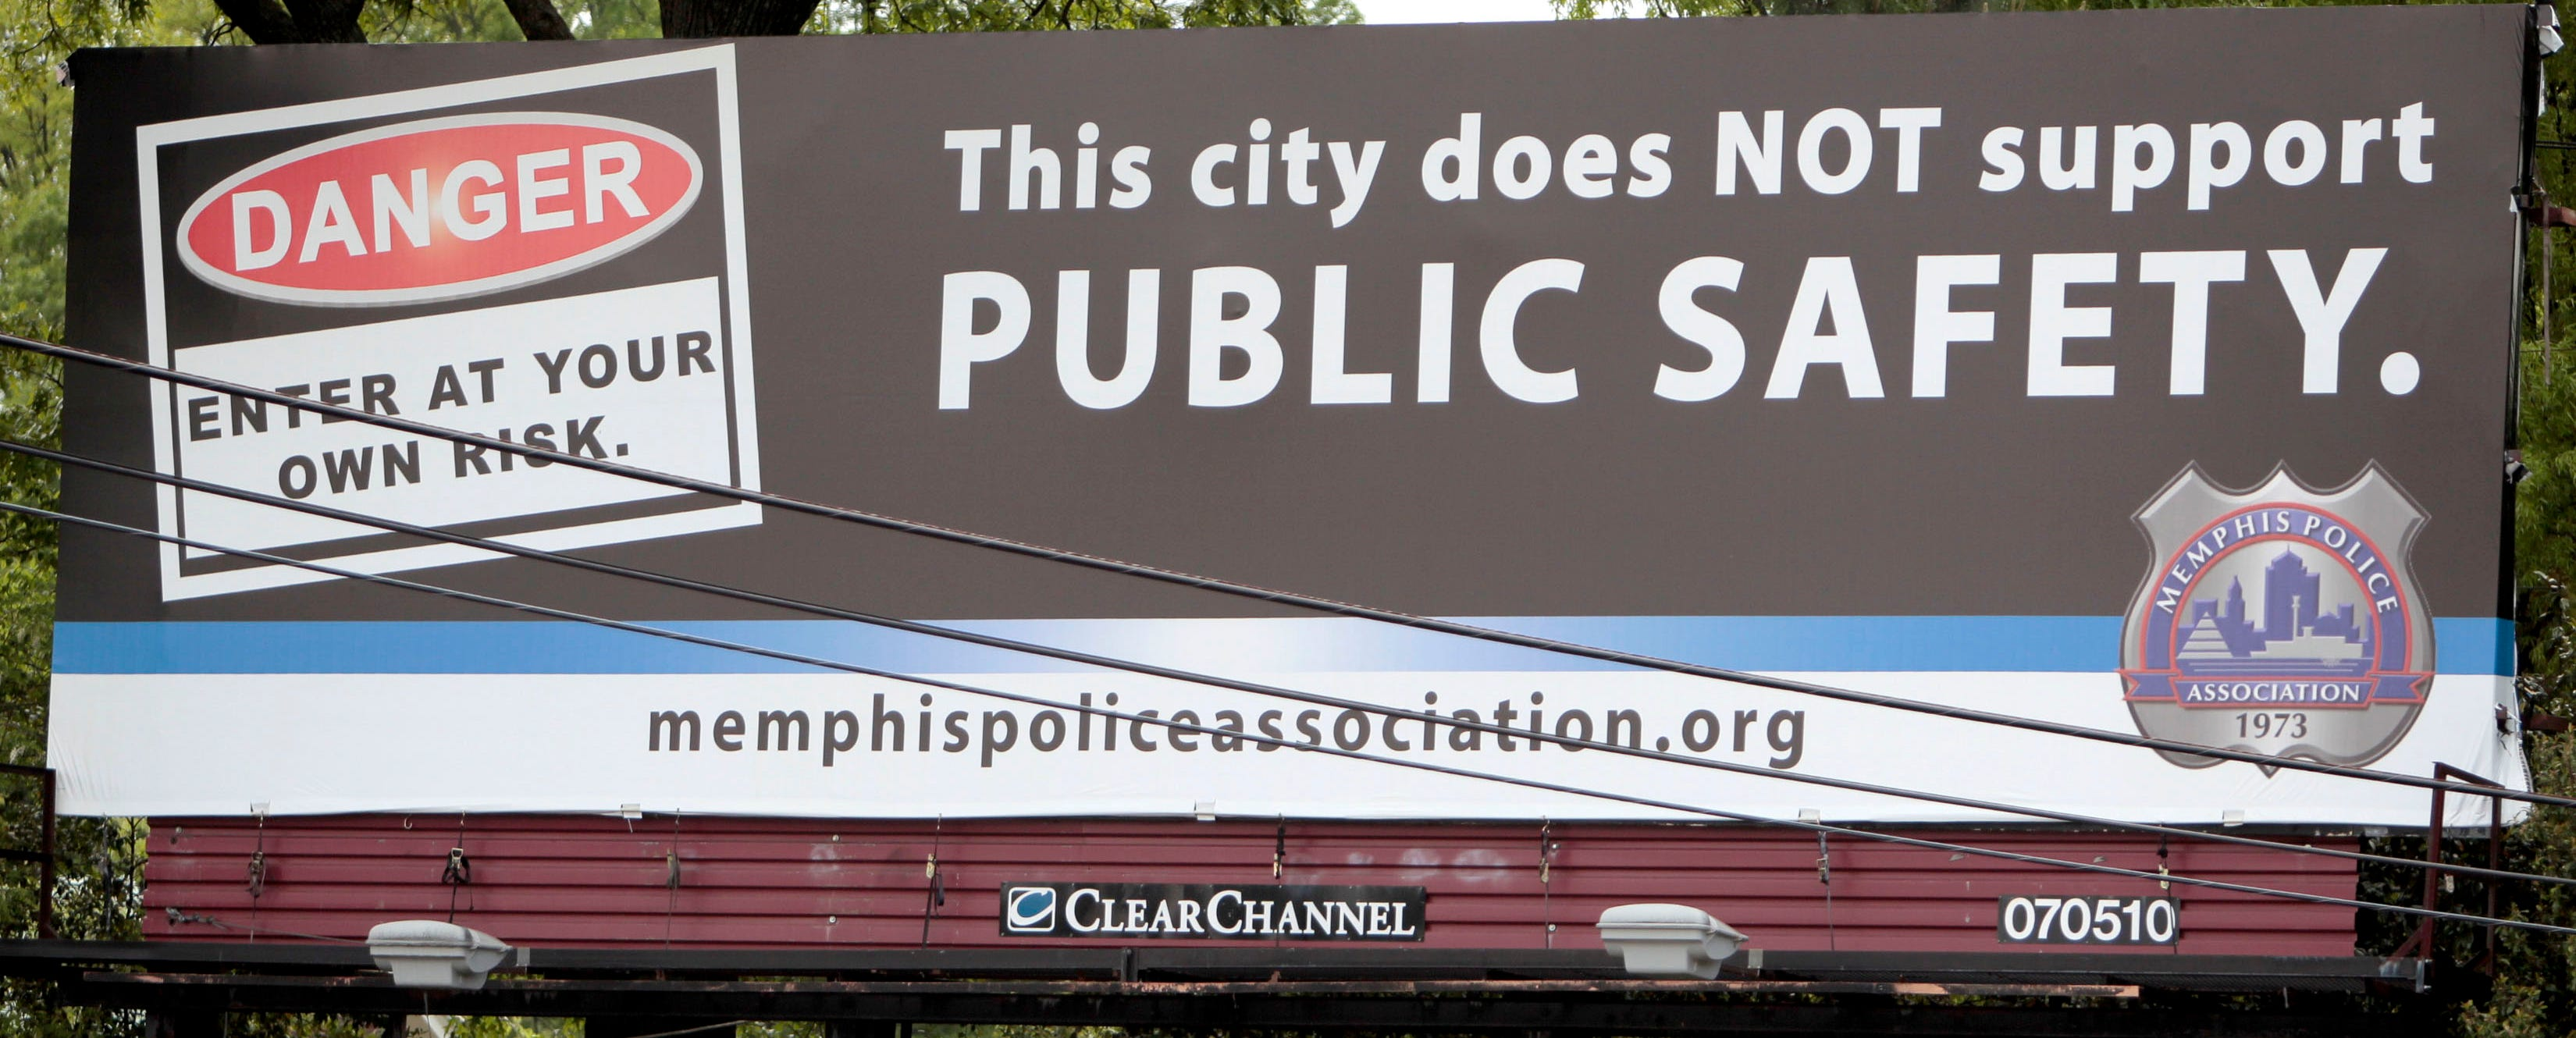 A Police Association billboard photographed April 23, 2013, on the corner of Hollywood and Poplar in Memphis.